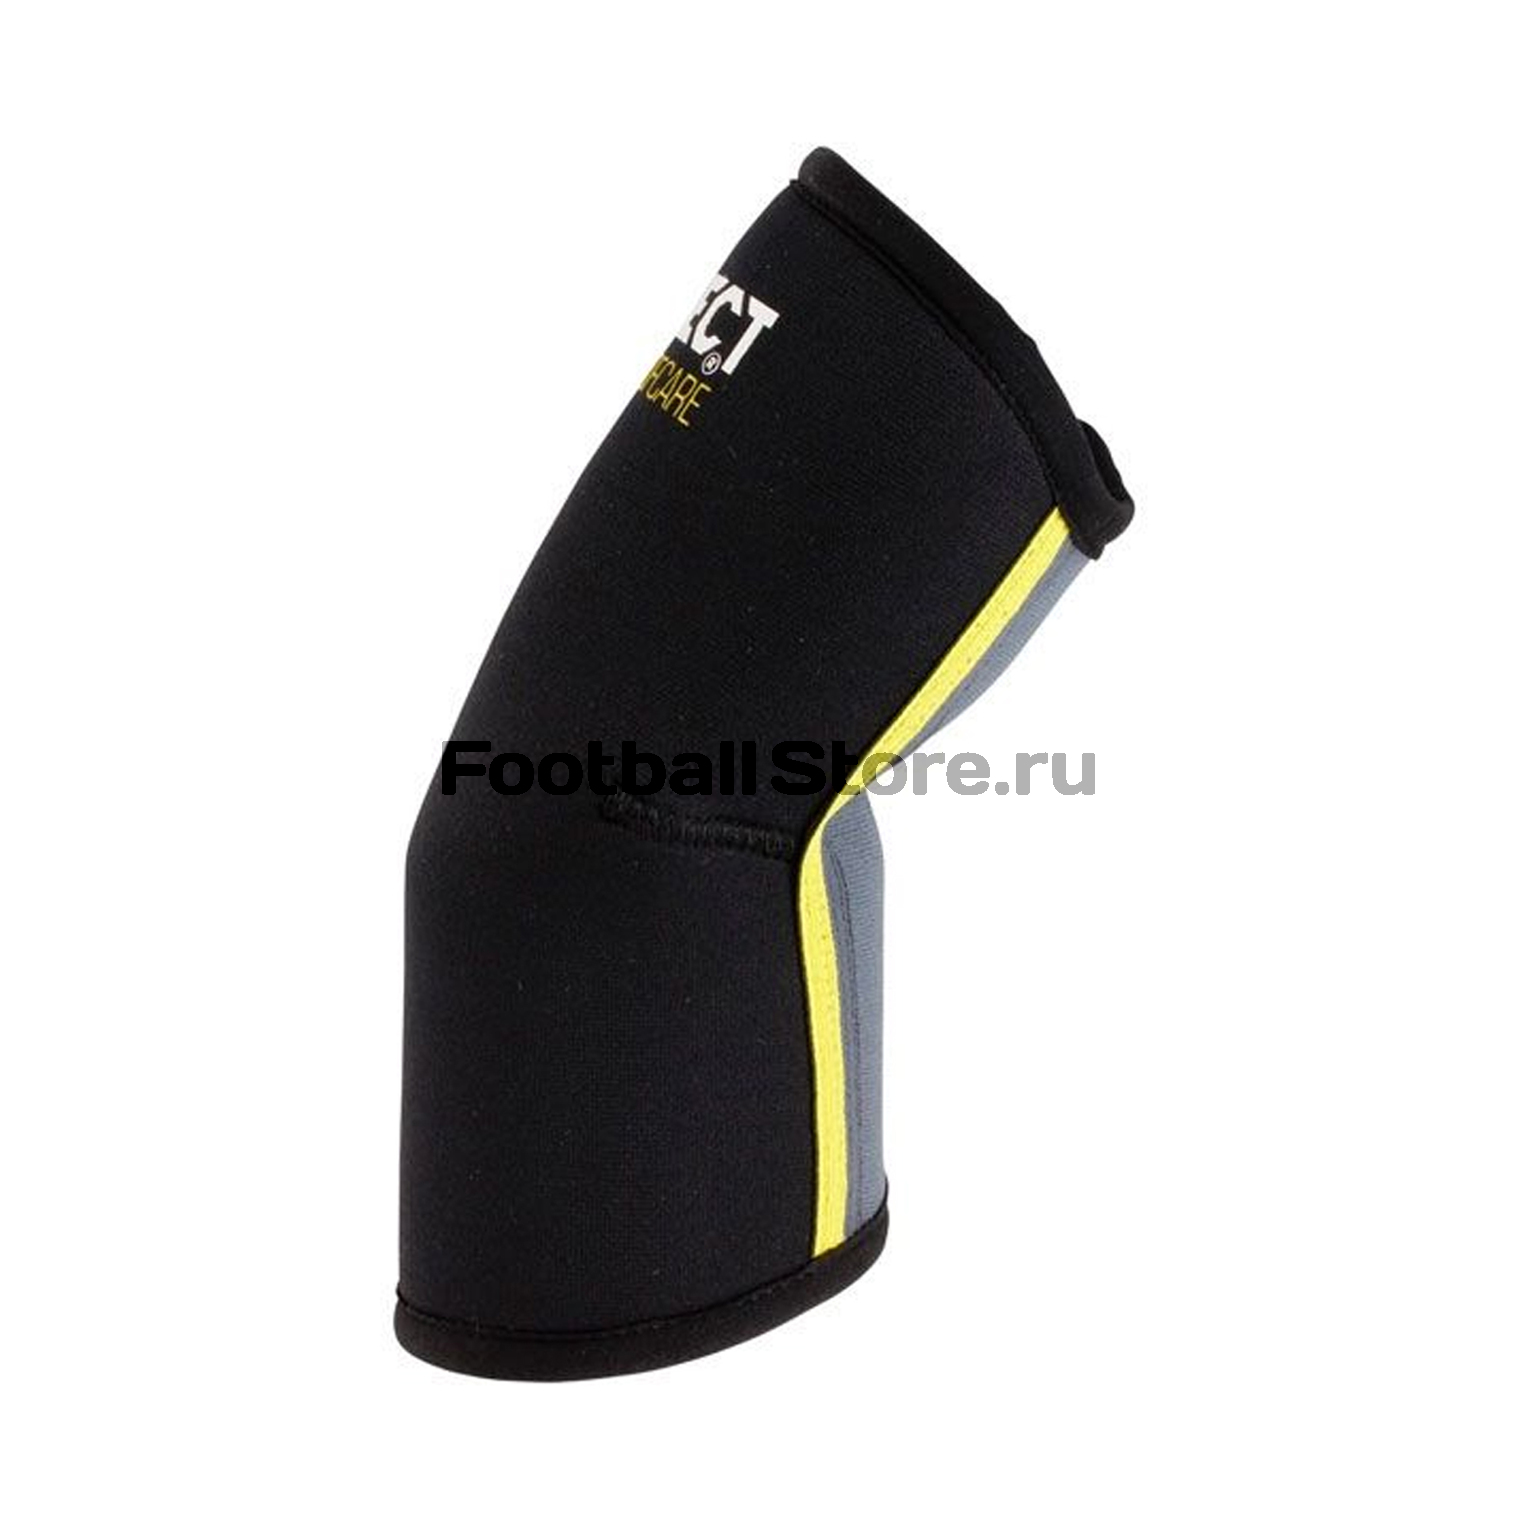 Налокотник Select Elbow Support 722608-610 недорого